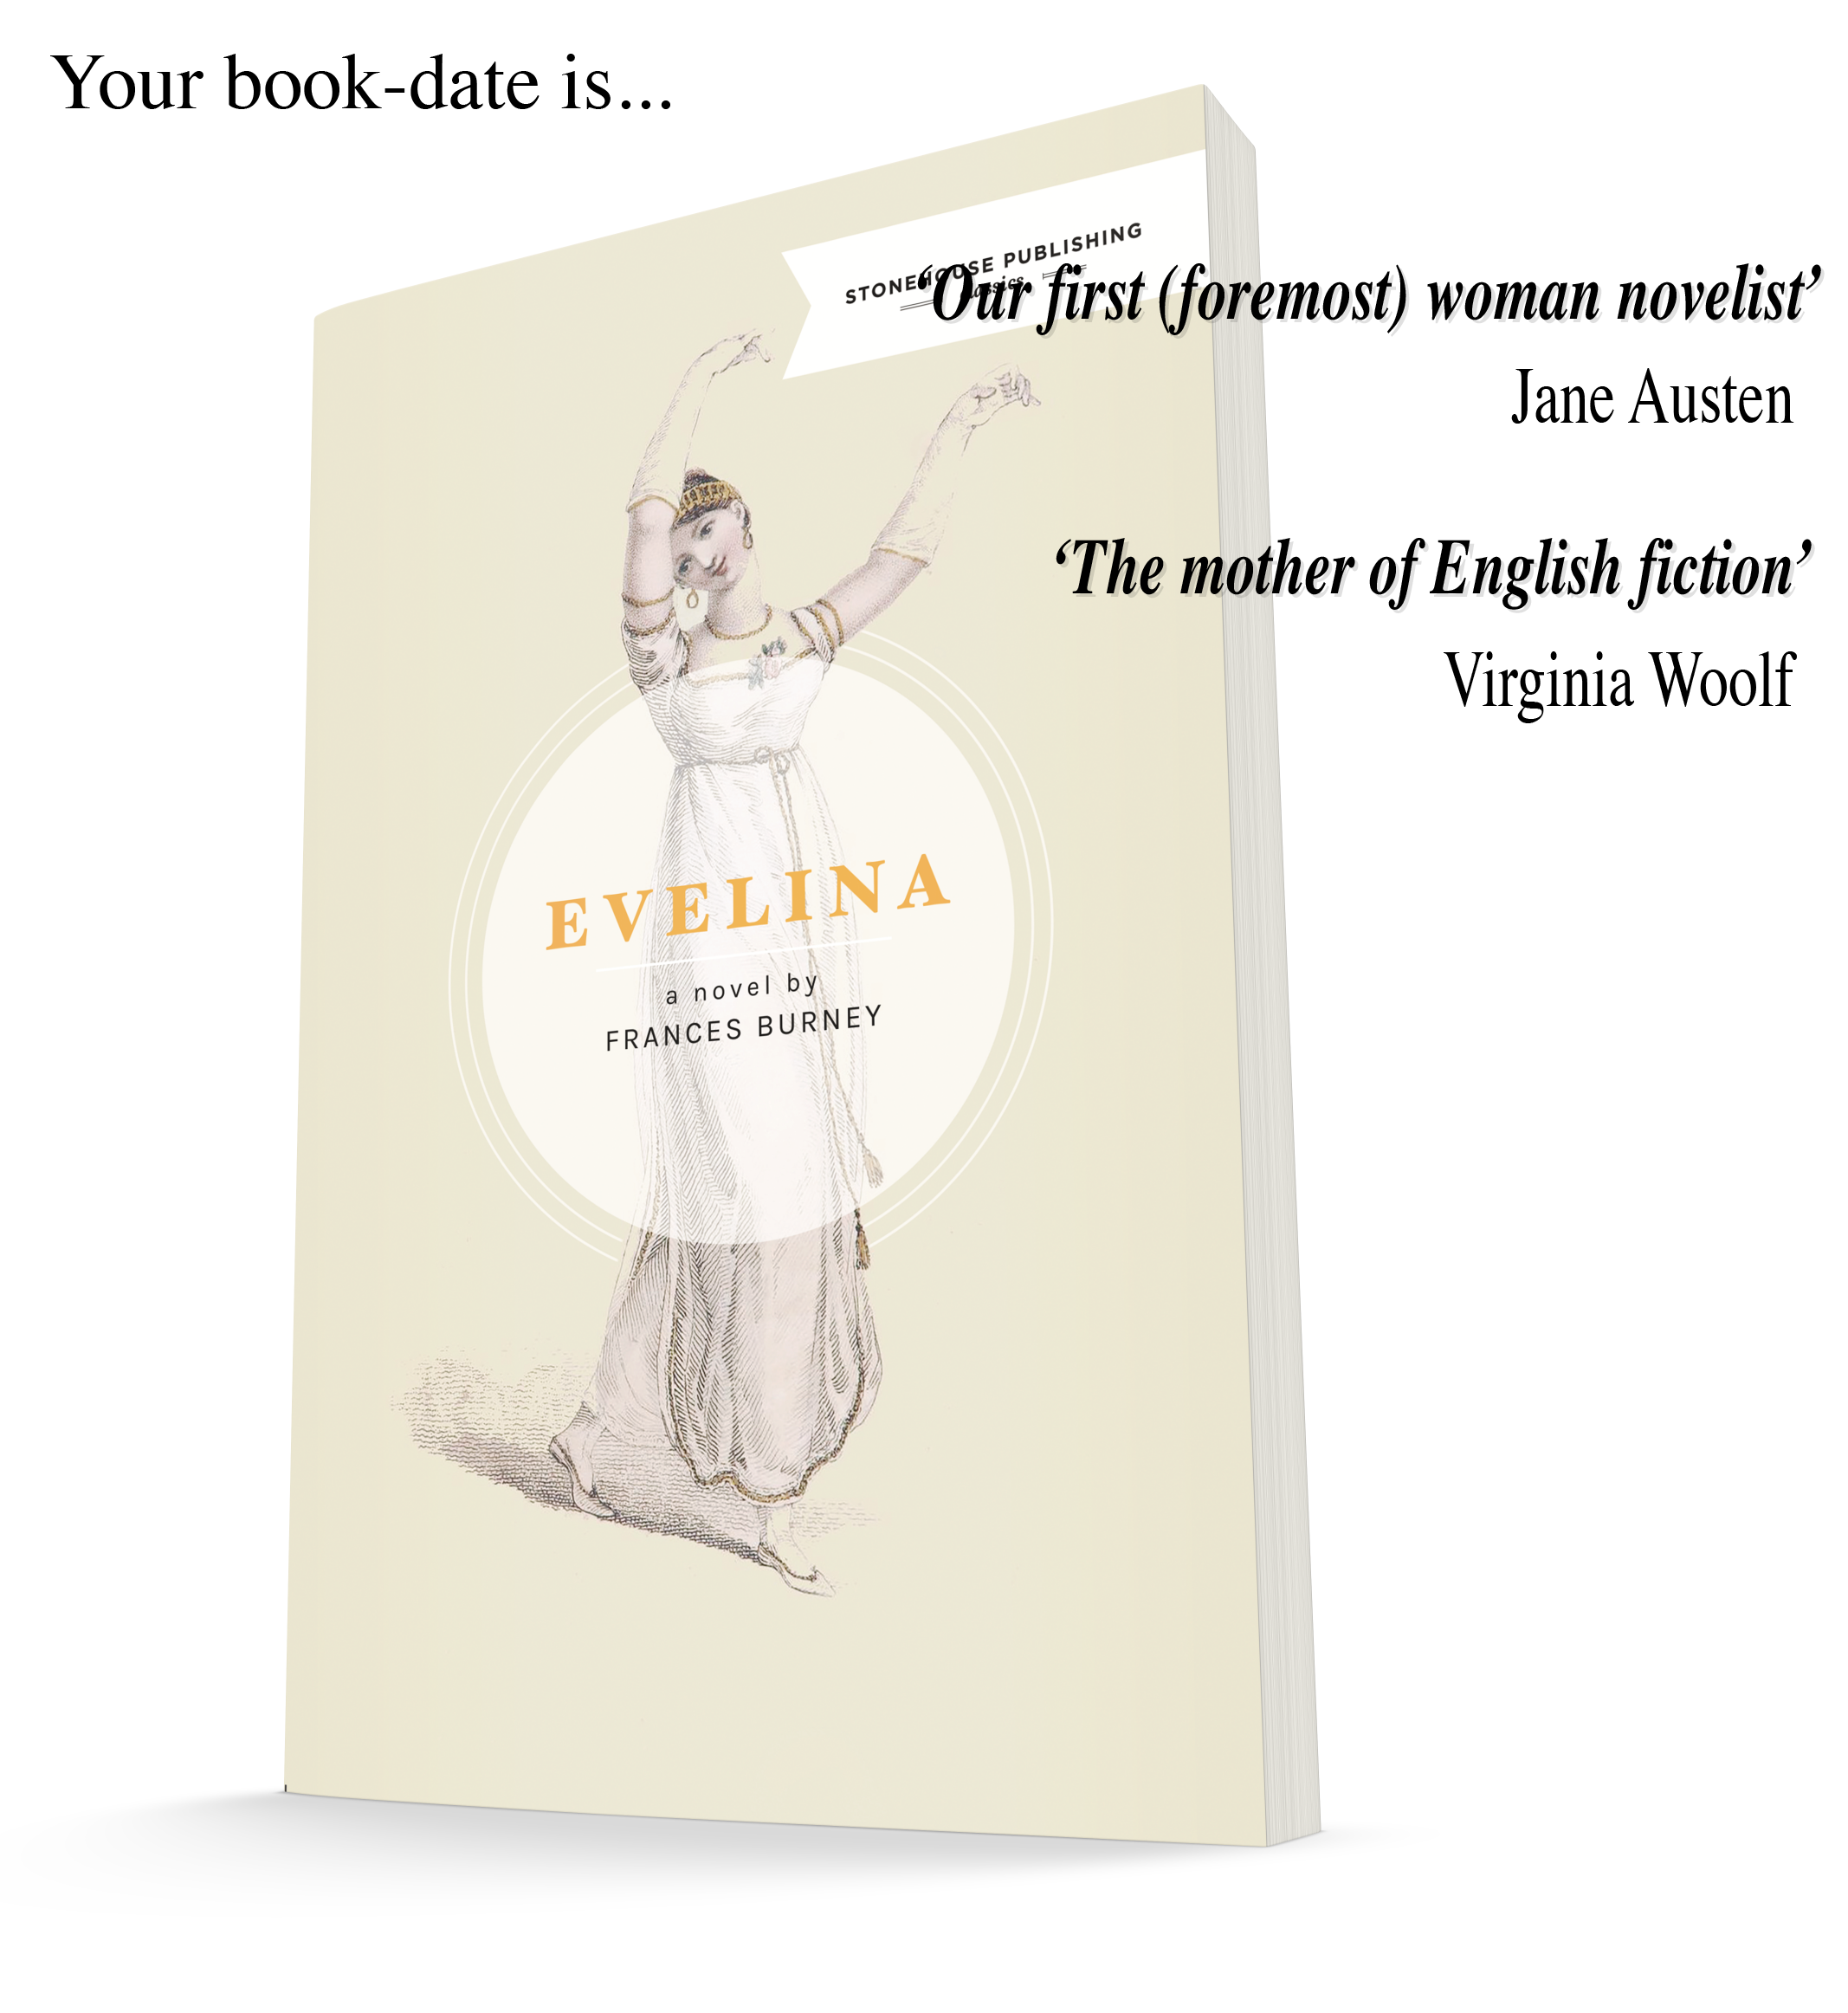 Your book-date is; Evelina